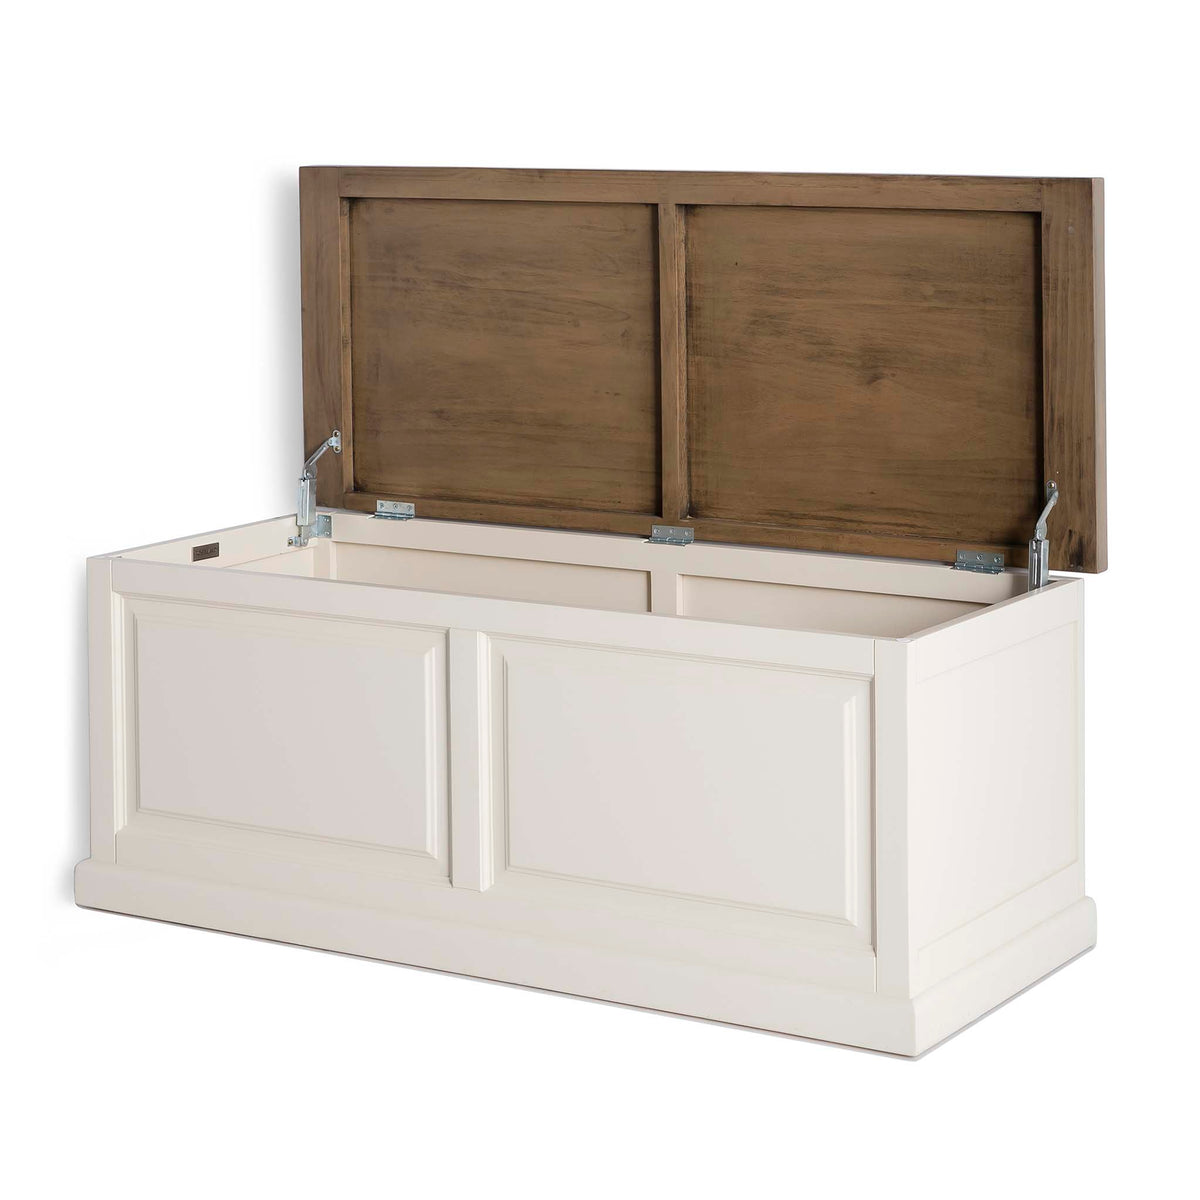 Hove Ivory Blanket Box Trunk Ottoman - Side view with lid open